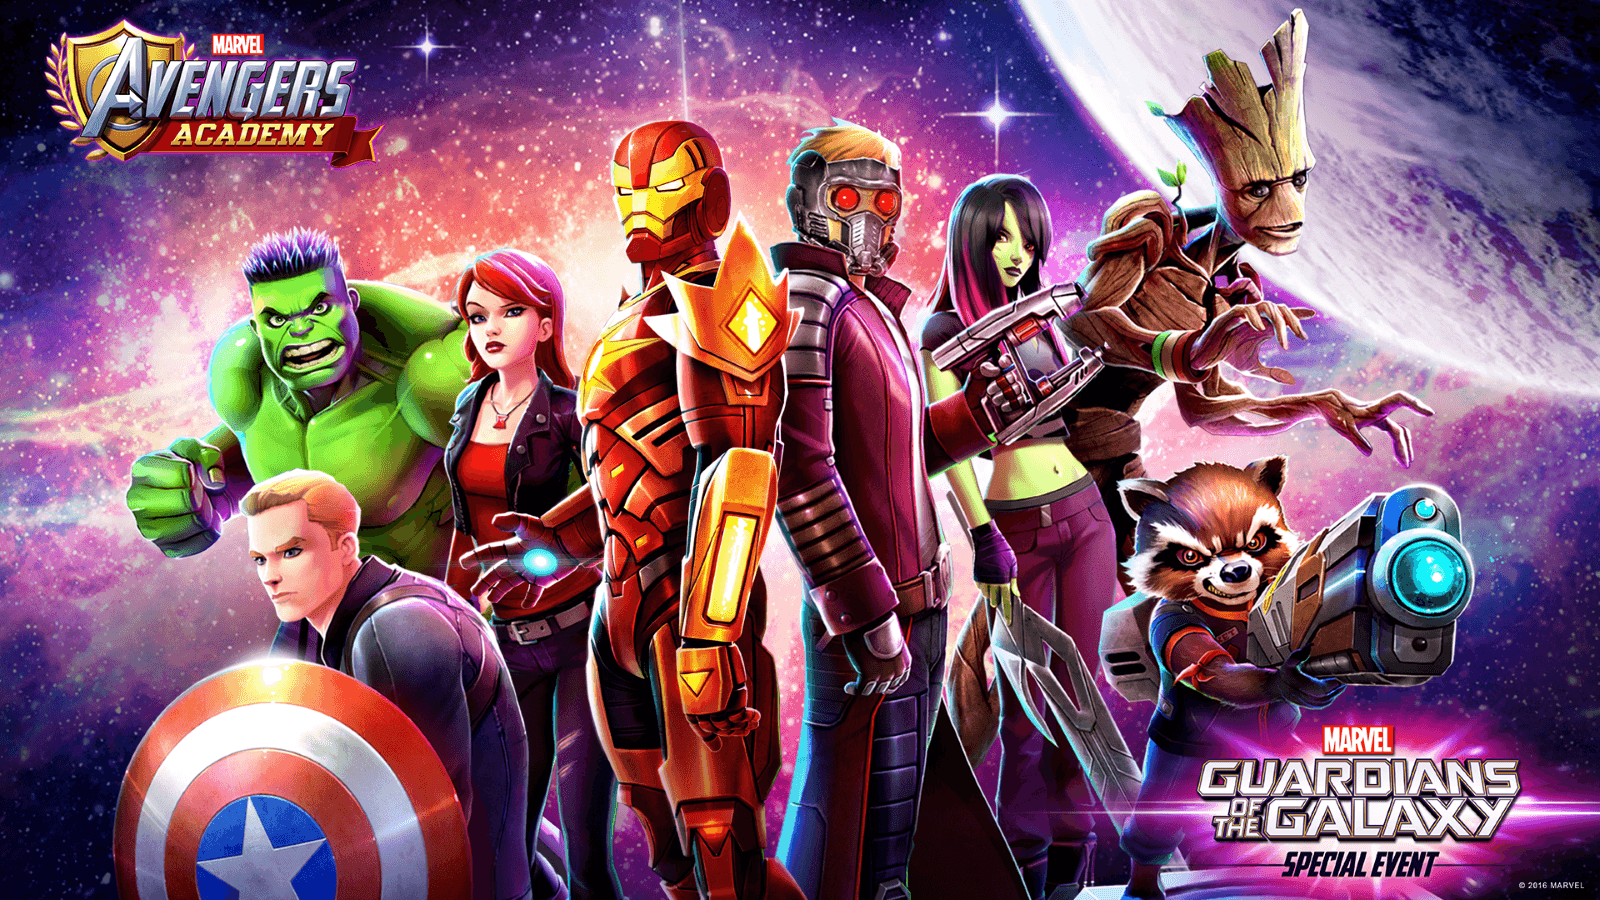 Marvel Avengers Academy Hosts Guardians of the Galaxy Event